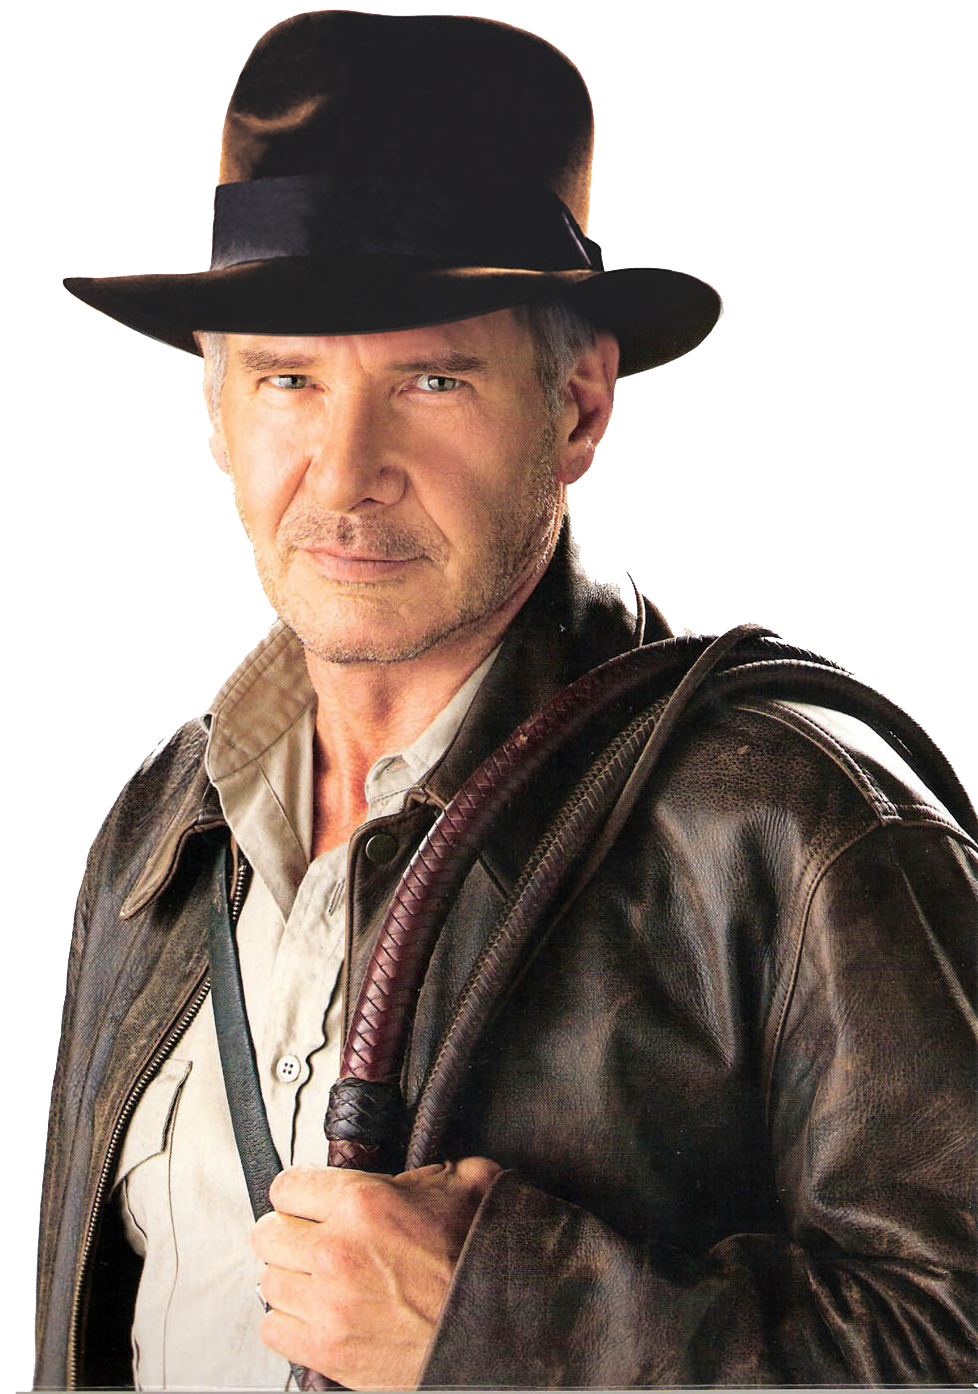 Indiana Jones Png Google Search Harrison Ford Indiana Jones Indiana Jones Indiana Jones Films